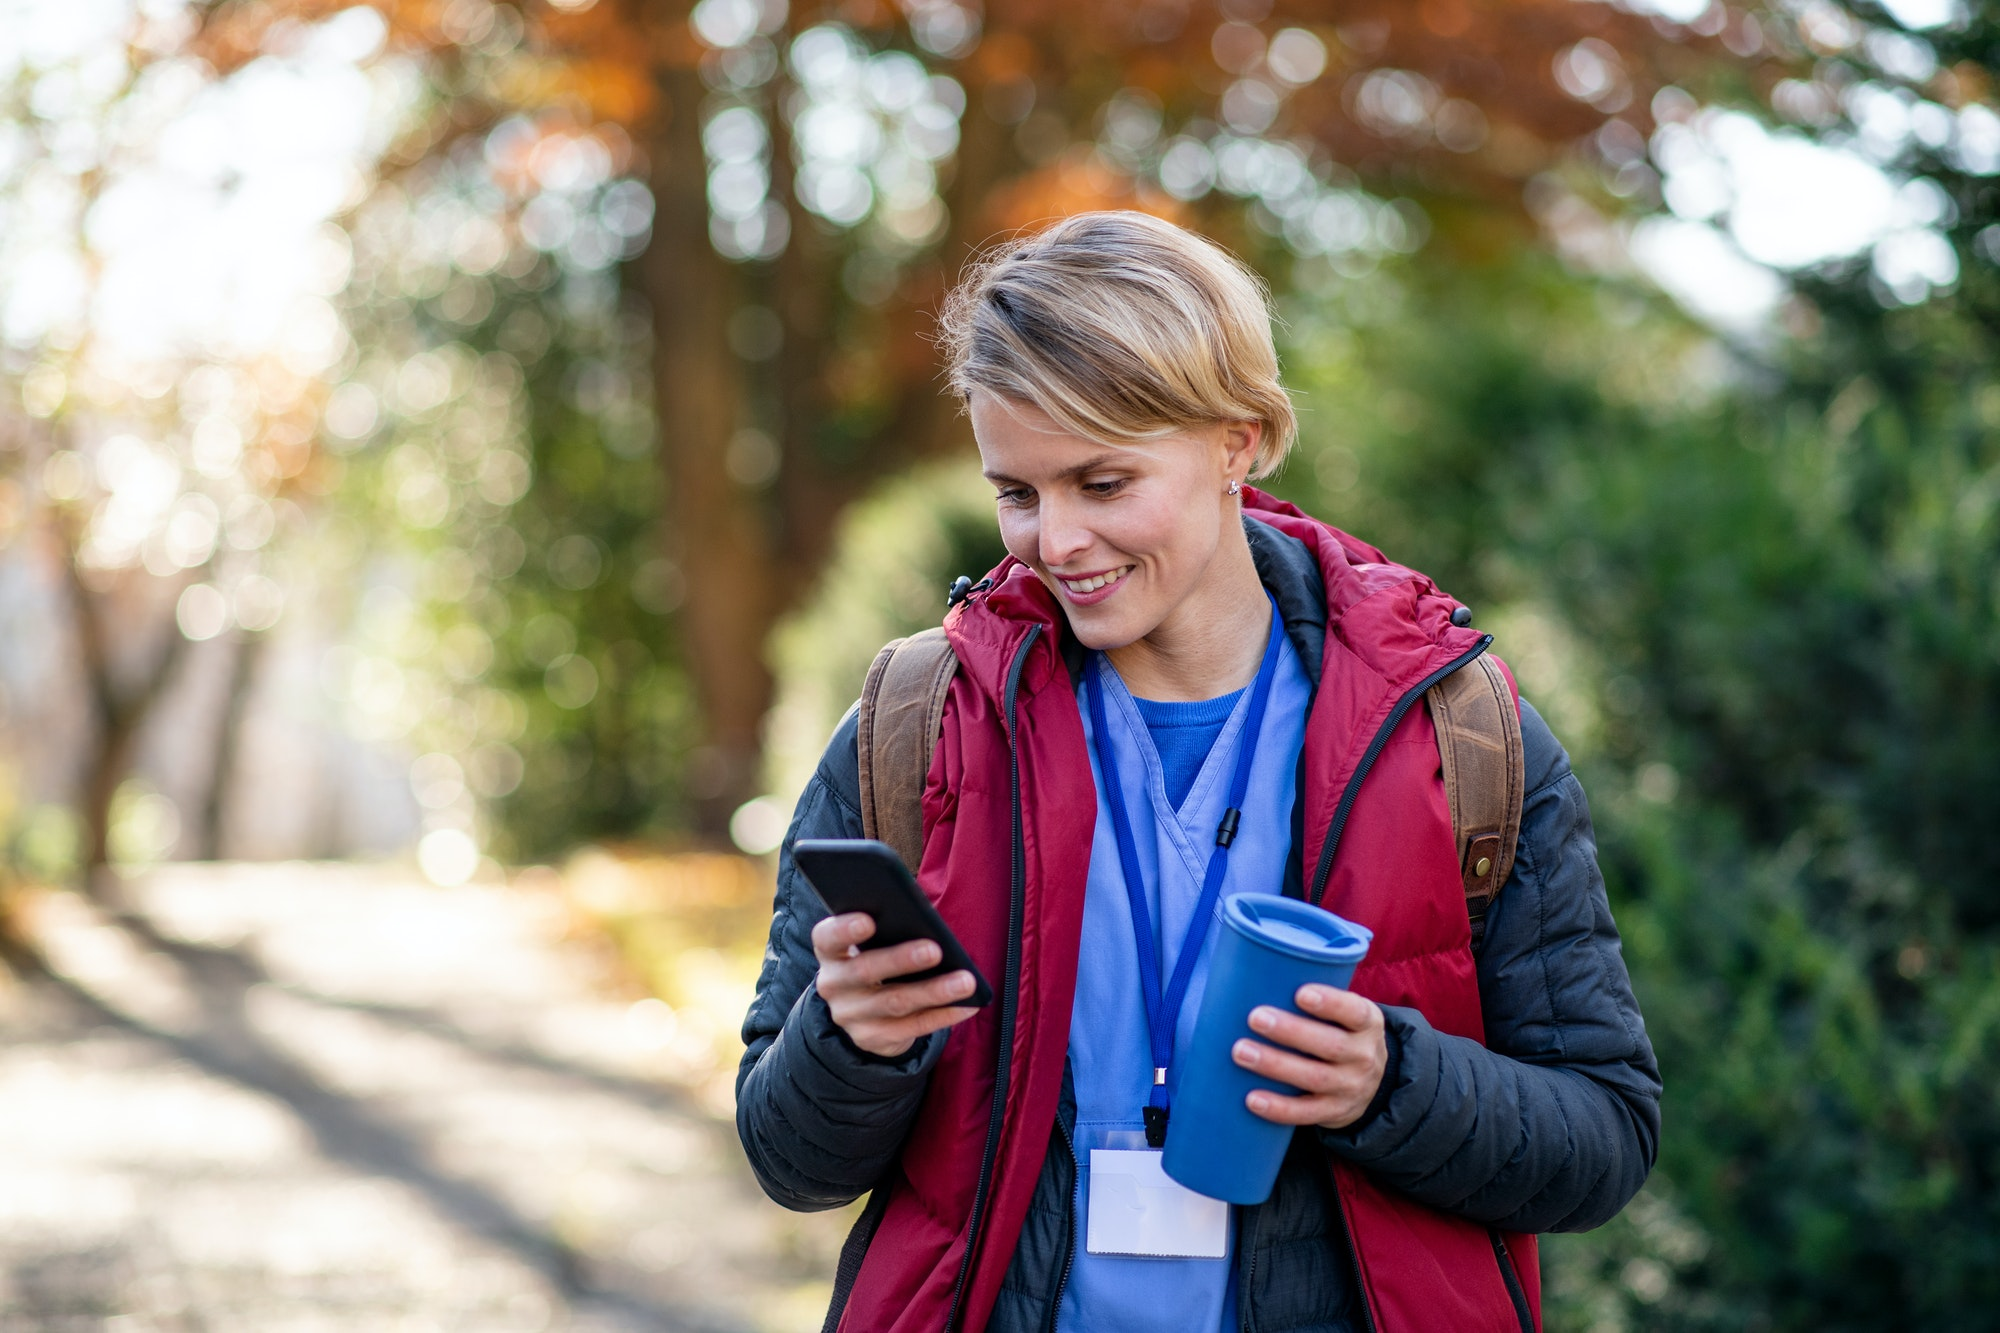 Woman caregiver, nurse or healthcare worker outdoors on the way to work, using smartphone.